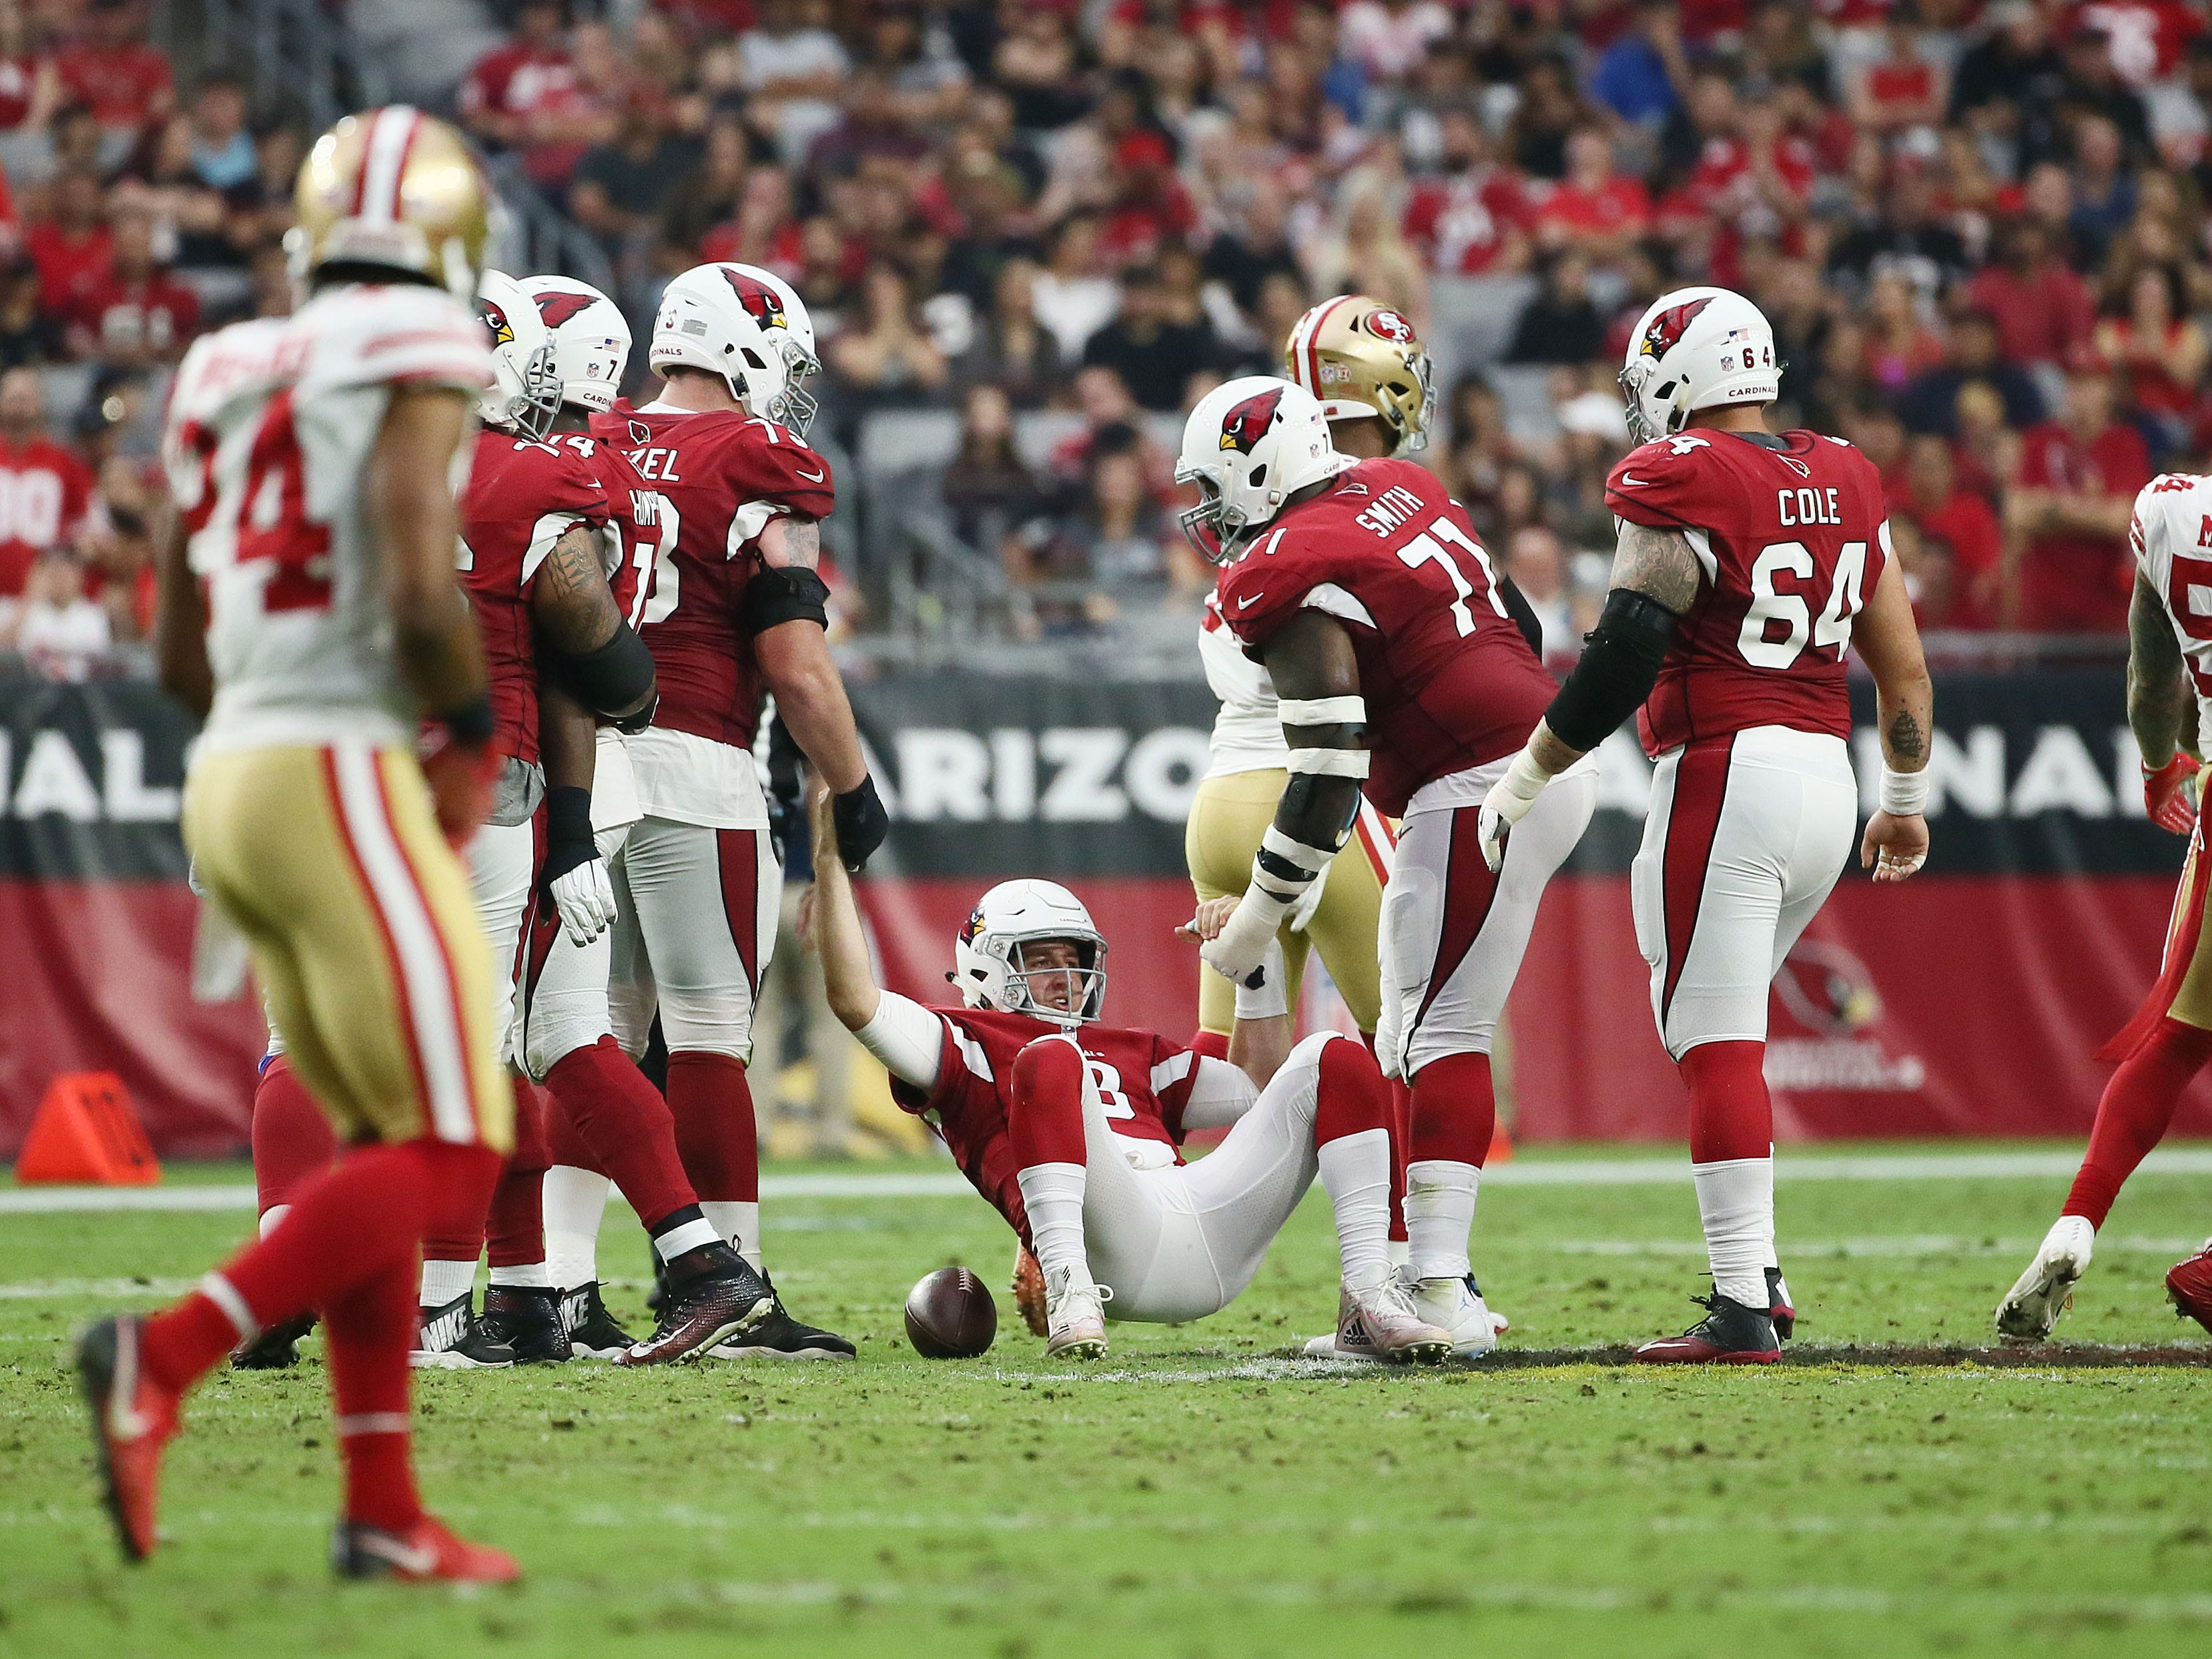 Arizona Cardinals quarterback Josh Rosen is helped off the turf after being sacked by the San Francisco 49ers in the first half during a game on Oct. 28 at State Farm Stadium.